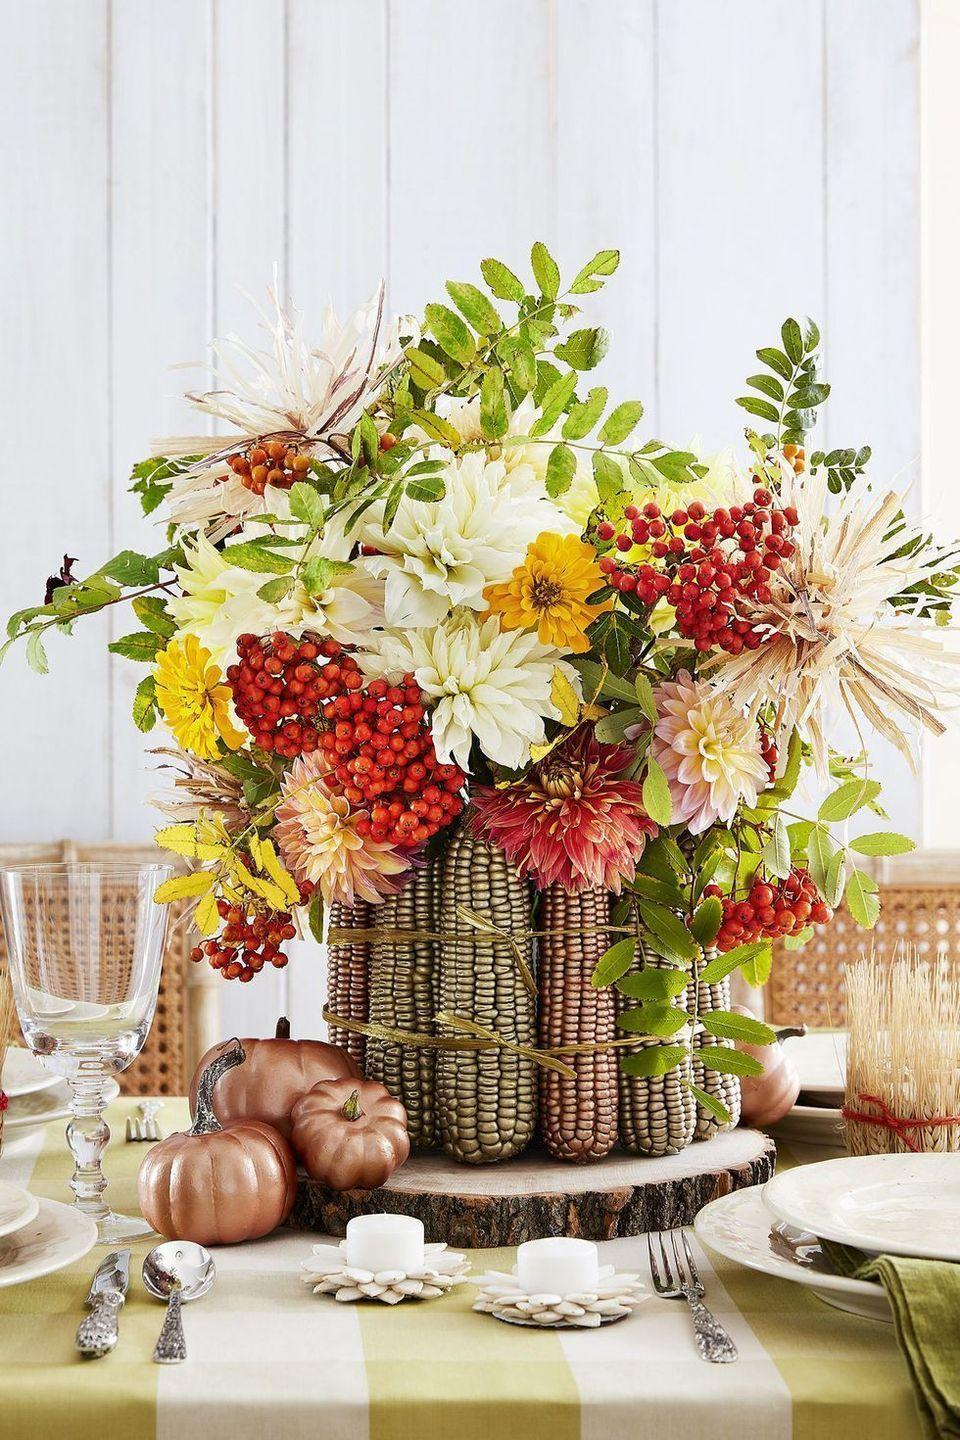 """<p>The easiest way to make it feel like the holidays is to decorate like it's the holidays. Even if no one is coming over this year, adding a few festive touches here and there will lift your spirits. A <a href=""""https://www.goodhousekeeping.com/holidays/thanksgiving-ideas/g1681/thanksgiving-centerpieces-easy-elegant/"""" rel=""""nofollow noopener"""" target=""""_blank"""" data-ylk=""""slk:cool centerpiece"""" class=""""link rapid-noclick-resp"""">cool centerpiece</a> can go a long way in setting the Thanksgiving mood. </p><p><strong>RELATED:</strong> <a href=""""https://www.goodhousekeeping.com/holidays/thanksgiving-ideas/g22688007/thanksgiving-decorations/?slide=24"""" rel=""""nofollow noopener"""" target=""""_blank"""" data-ylk=""""slk:50 Thanksgiving Decor Ideas for a Feast to Remember"""" class=""""link rapid-noclick-resp"""">50 Thanksgiving Decor Ideas for a Feast to Remember</a></p><p><em><a href=""""https://www.countryliving.com/entertaining/g2130/thanksgiving-centerpieces"""" rel=""""nofollow noopener"""" target=""""_blank"""" data-ylk=""""slk:Get the tutorial for this maize vase at Country Living »"""" class=""""link rapid-noclick-resp"""">Get the tutorial for this maize vase at Country Living »</a></em></p>"""